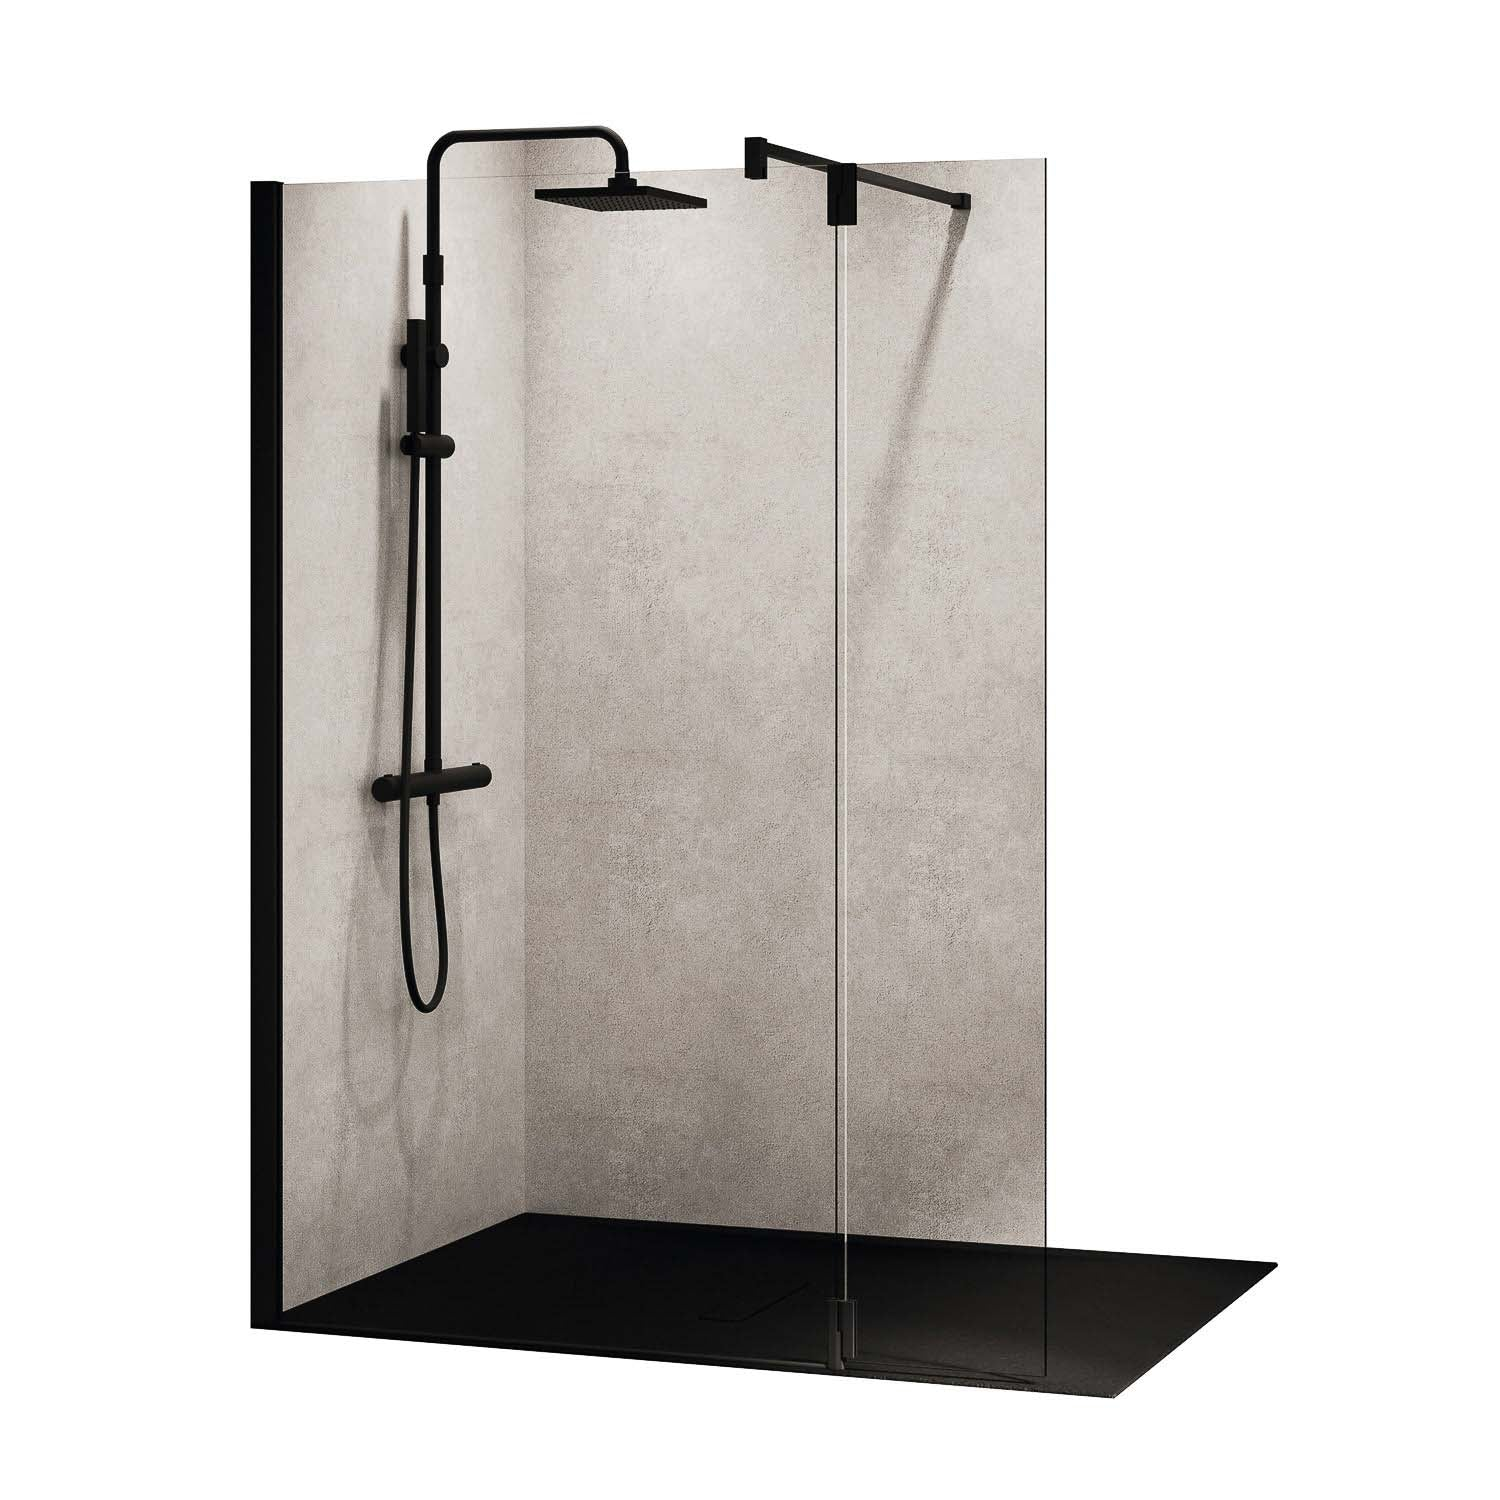 720-750mm Ergo Wet Room Screen Clear Glass with a matt black finish on a white background